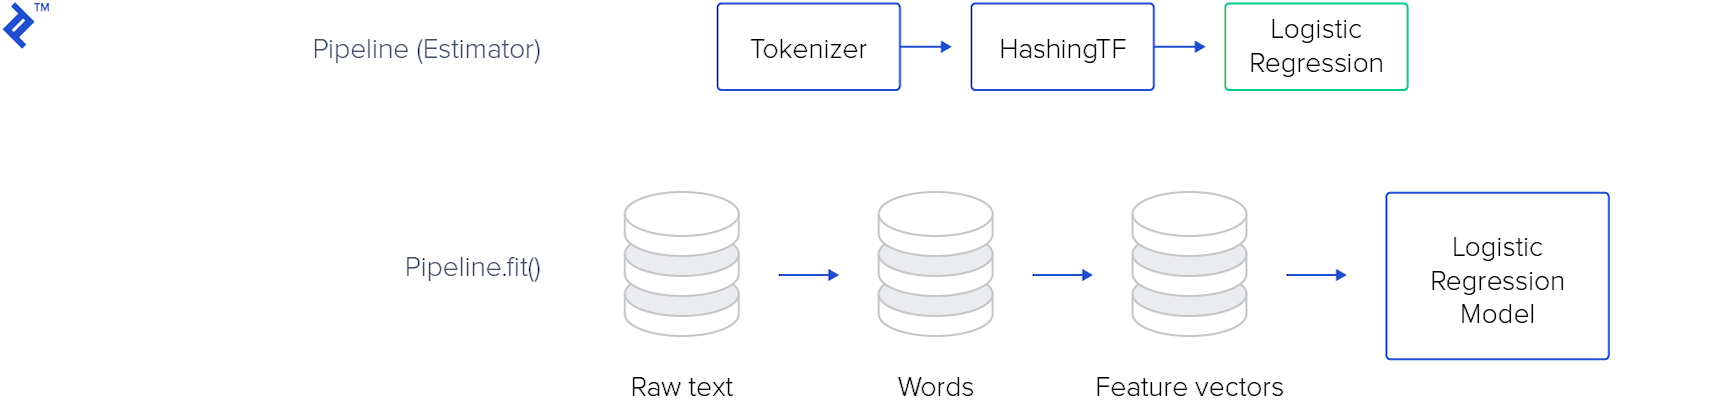 A Pipeline (Estimator) consisting of Tokenizer, HashingTF, and finally Logistic Regression.  Beneath it is the Pipeline.fit() function, changing raw text into words, then feature vectors, then finally a Logistic Regression Model.